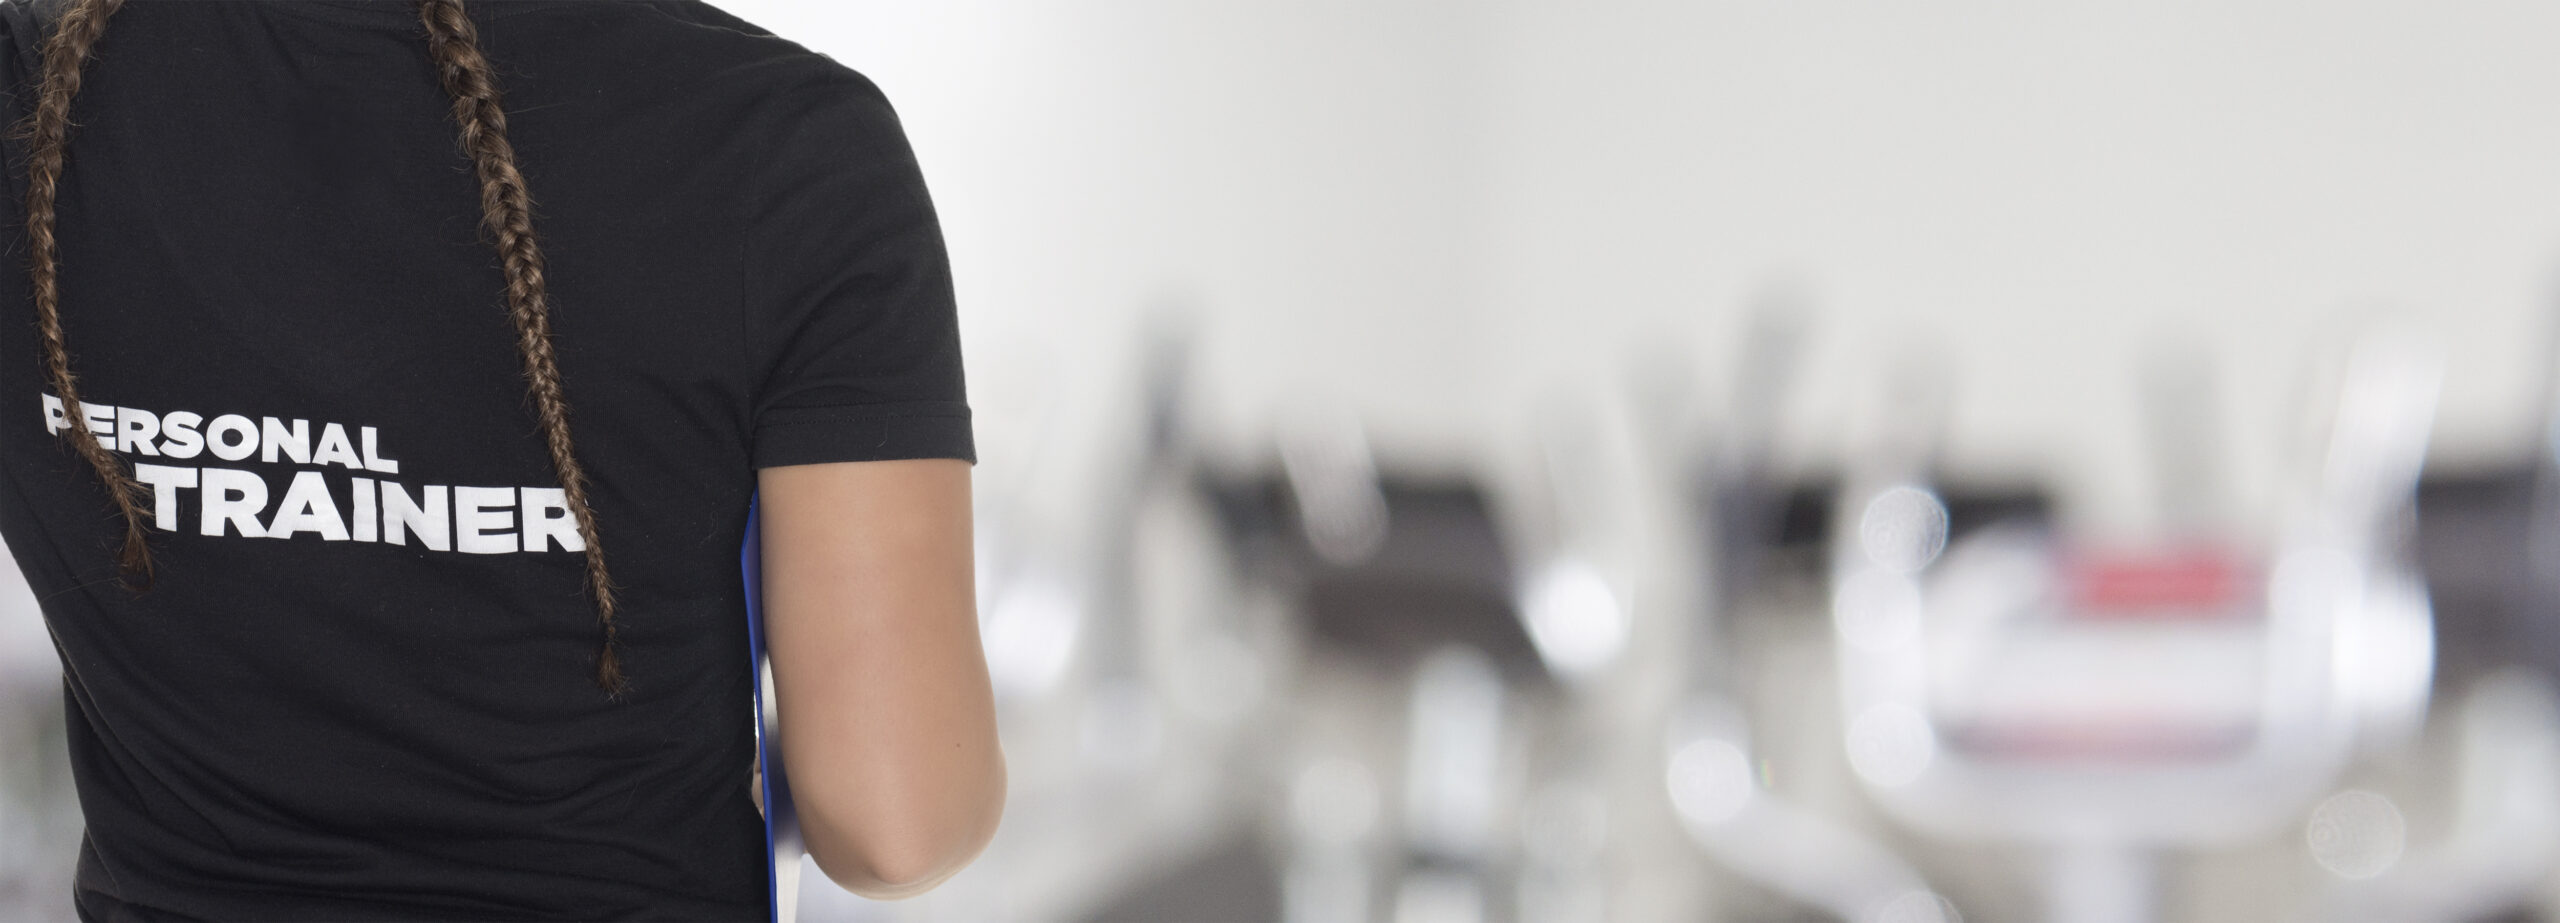 Personal Trainer page banner image TruSelf Sporting Club